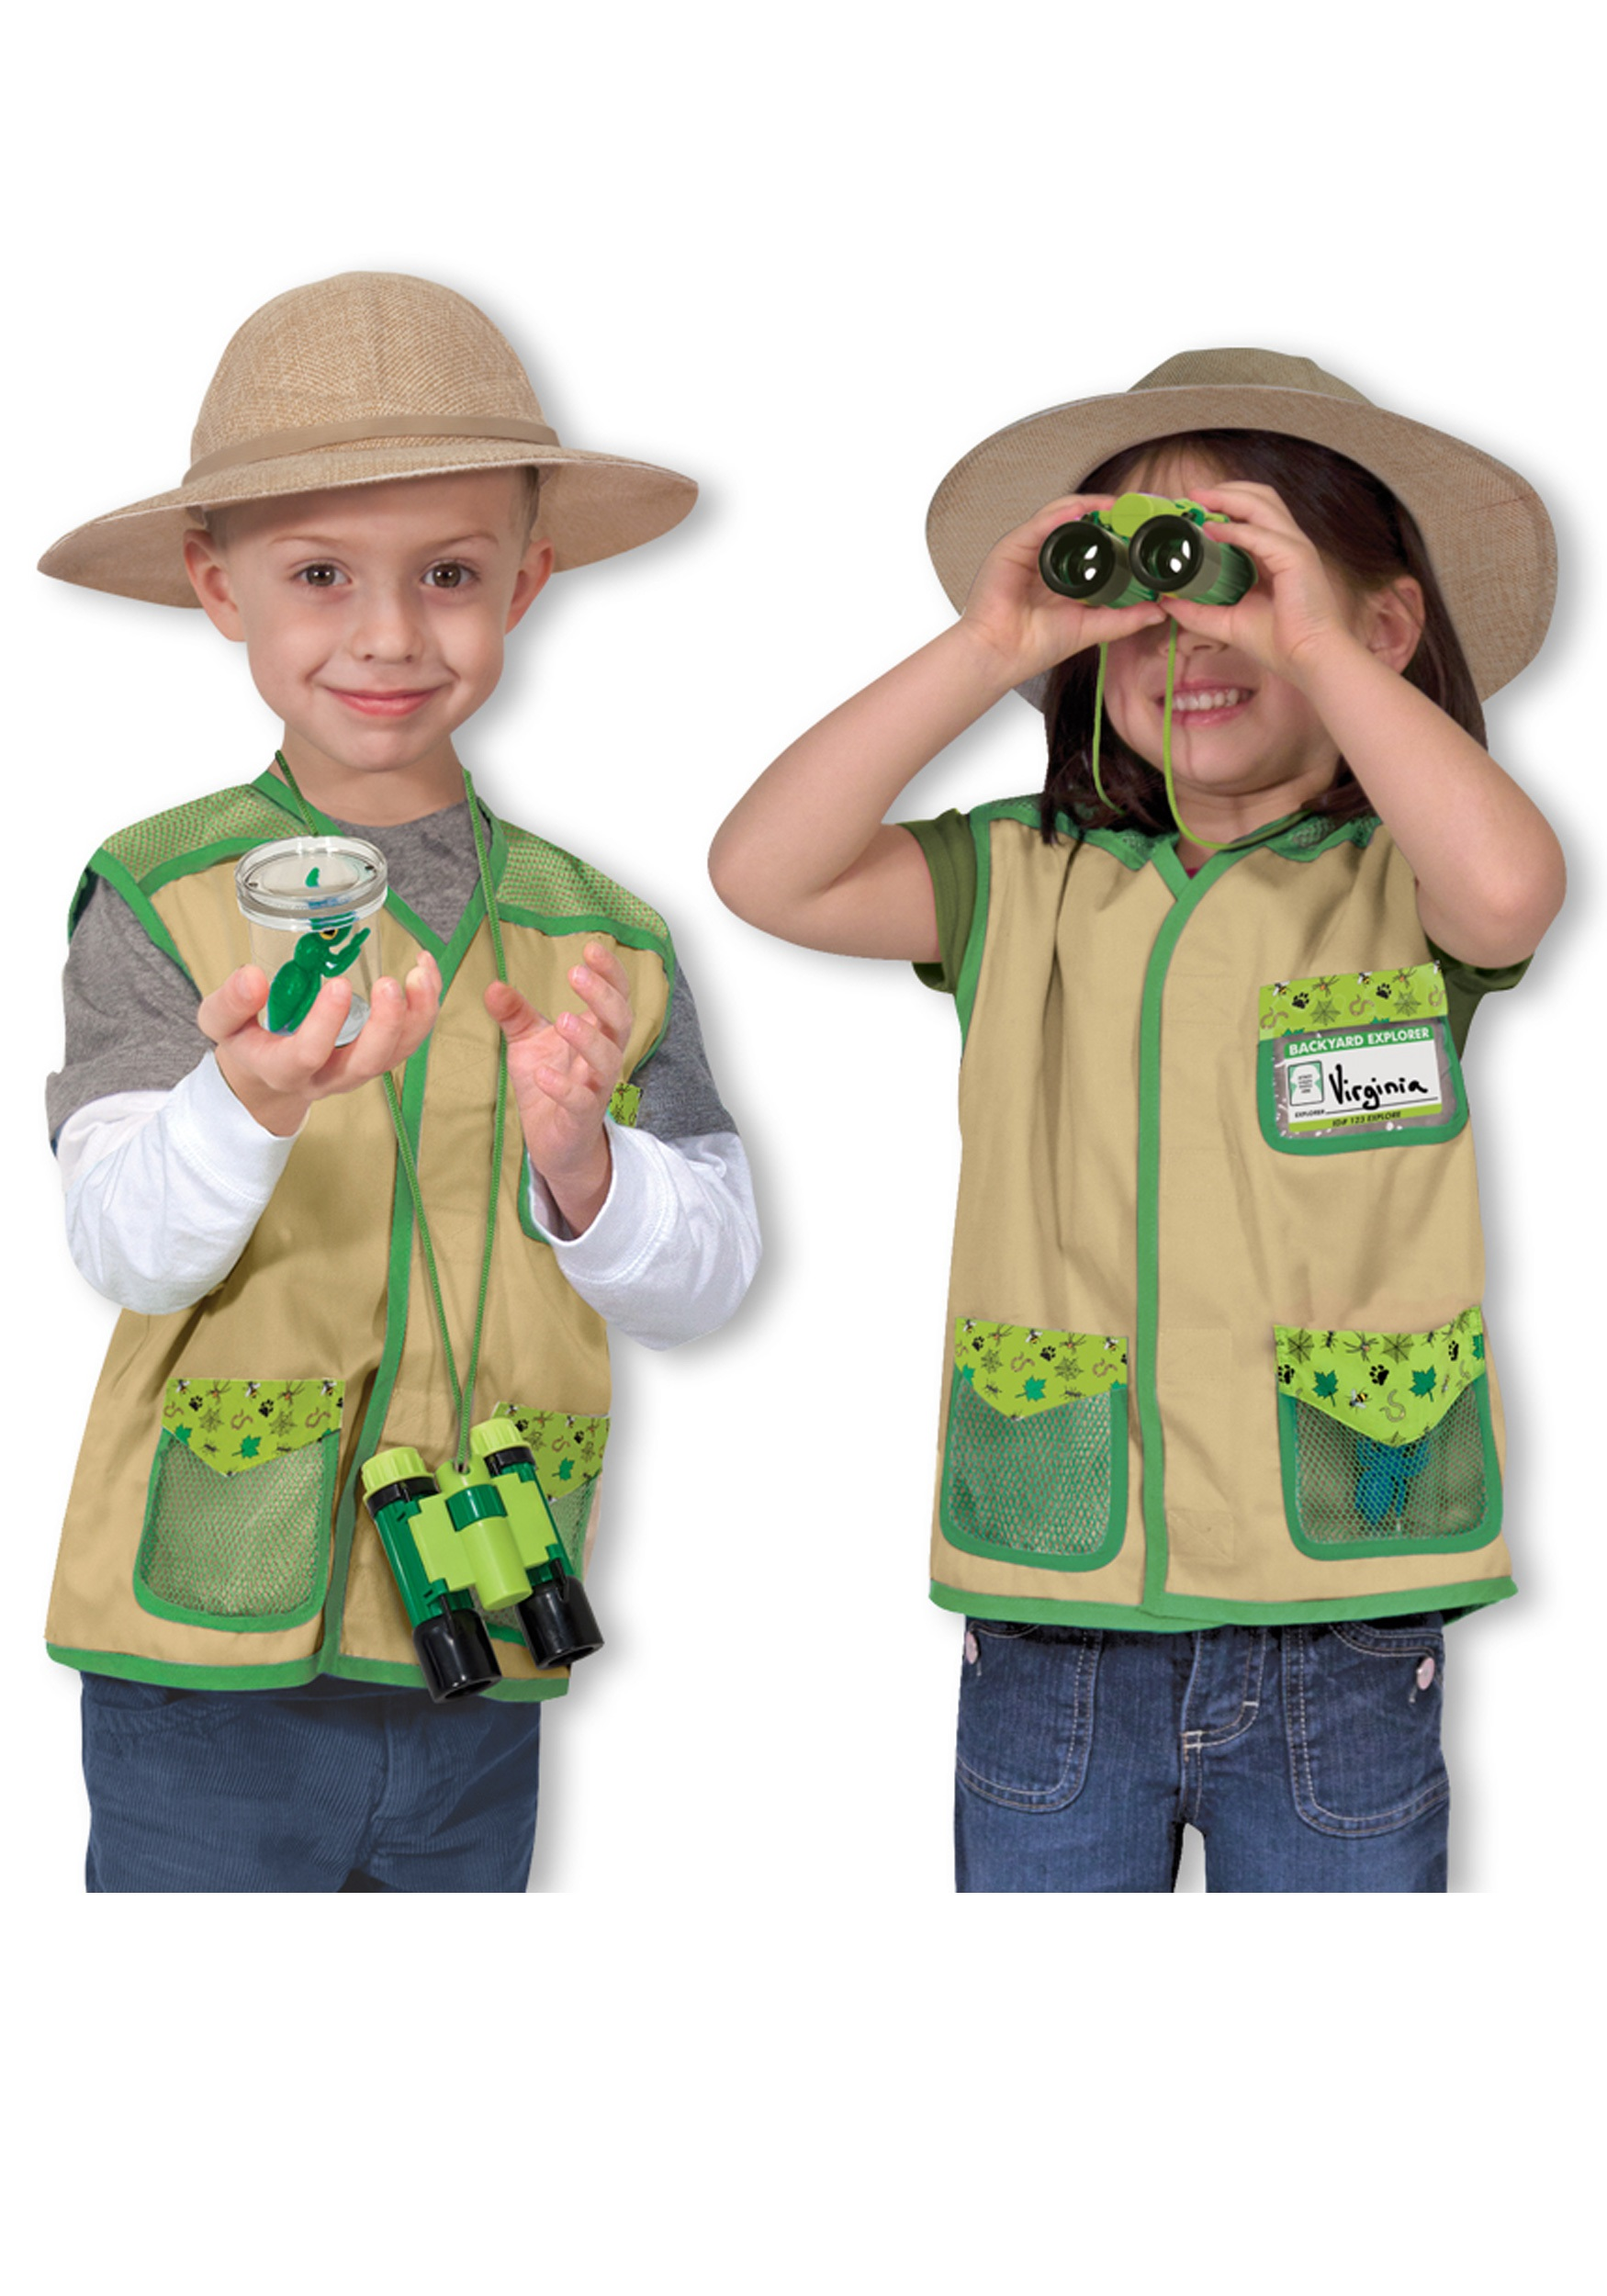 Melissa and Doug Backyard Explorer Costume  sc 1 st  Halloween Costumes & Melissa and Doug Backyard Explorer Costume - Halloween Costumes